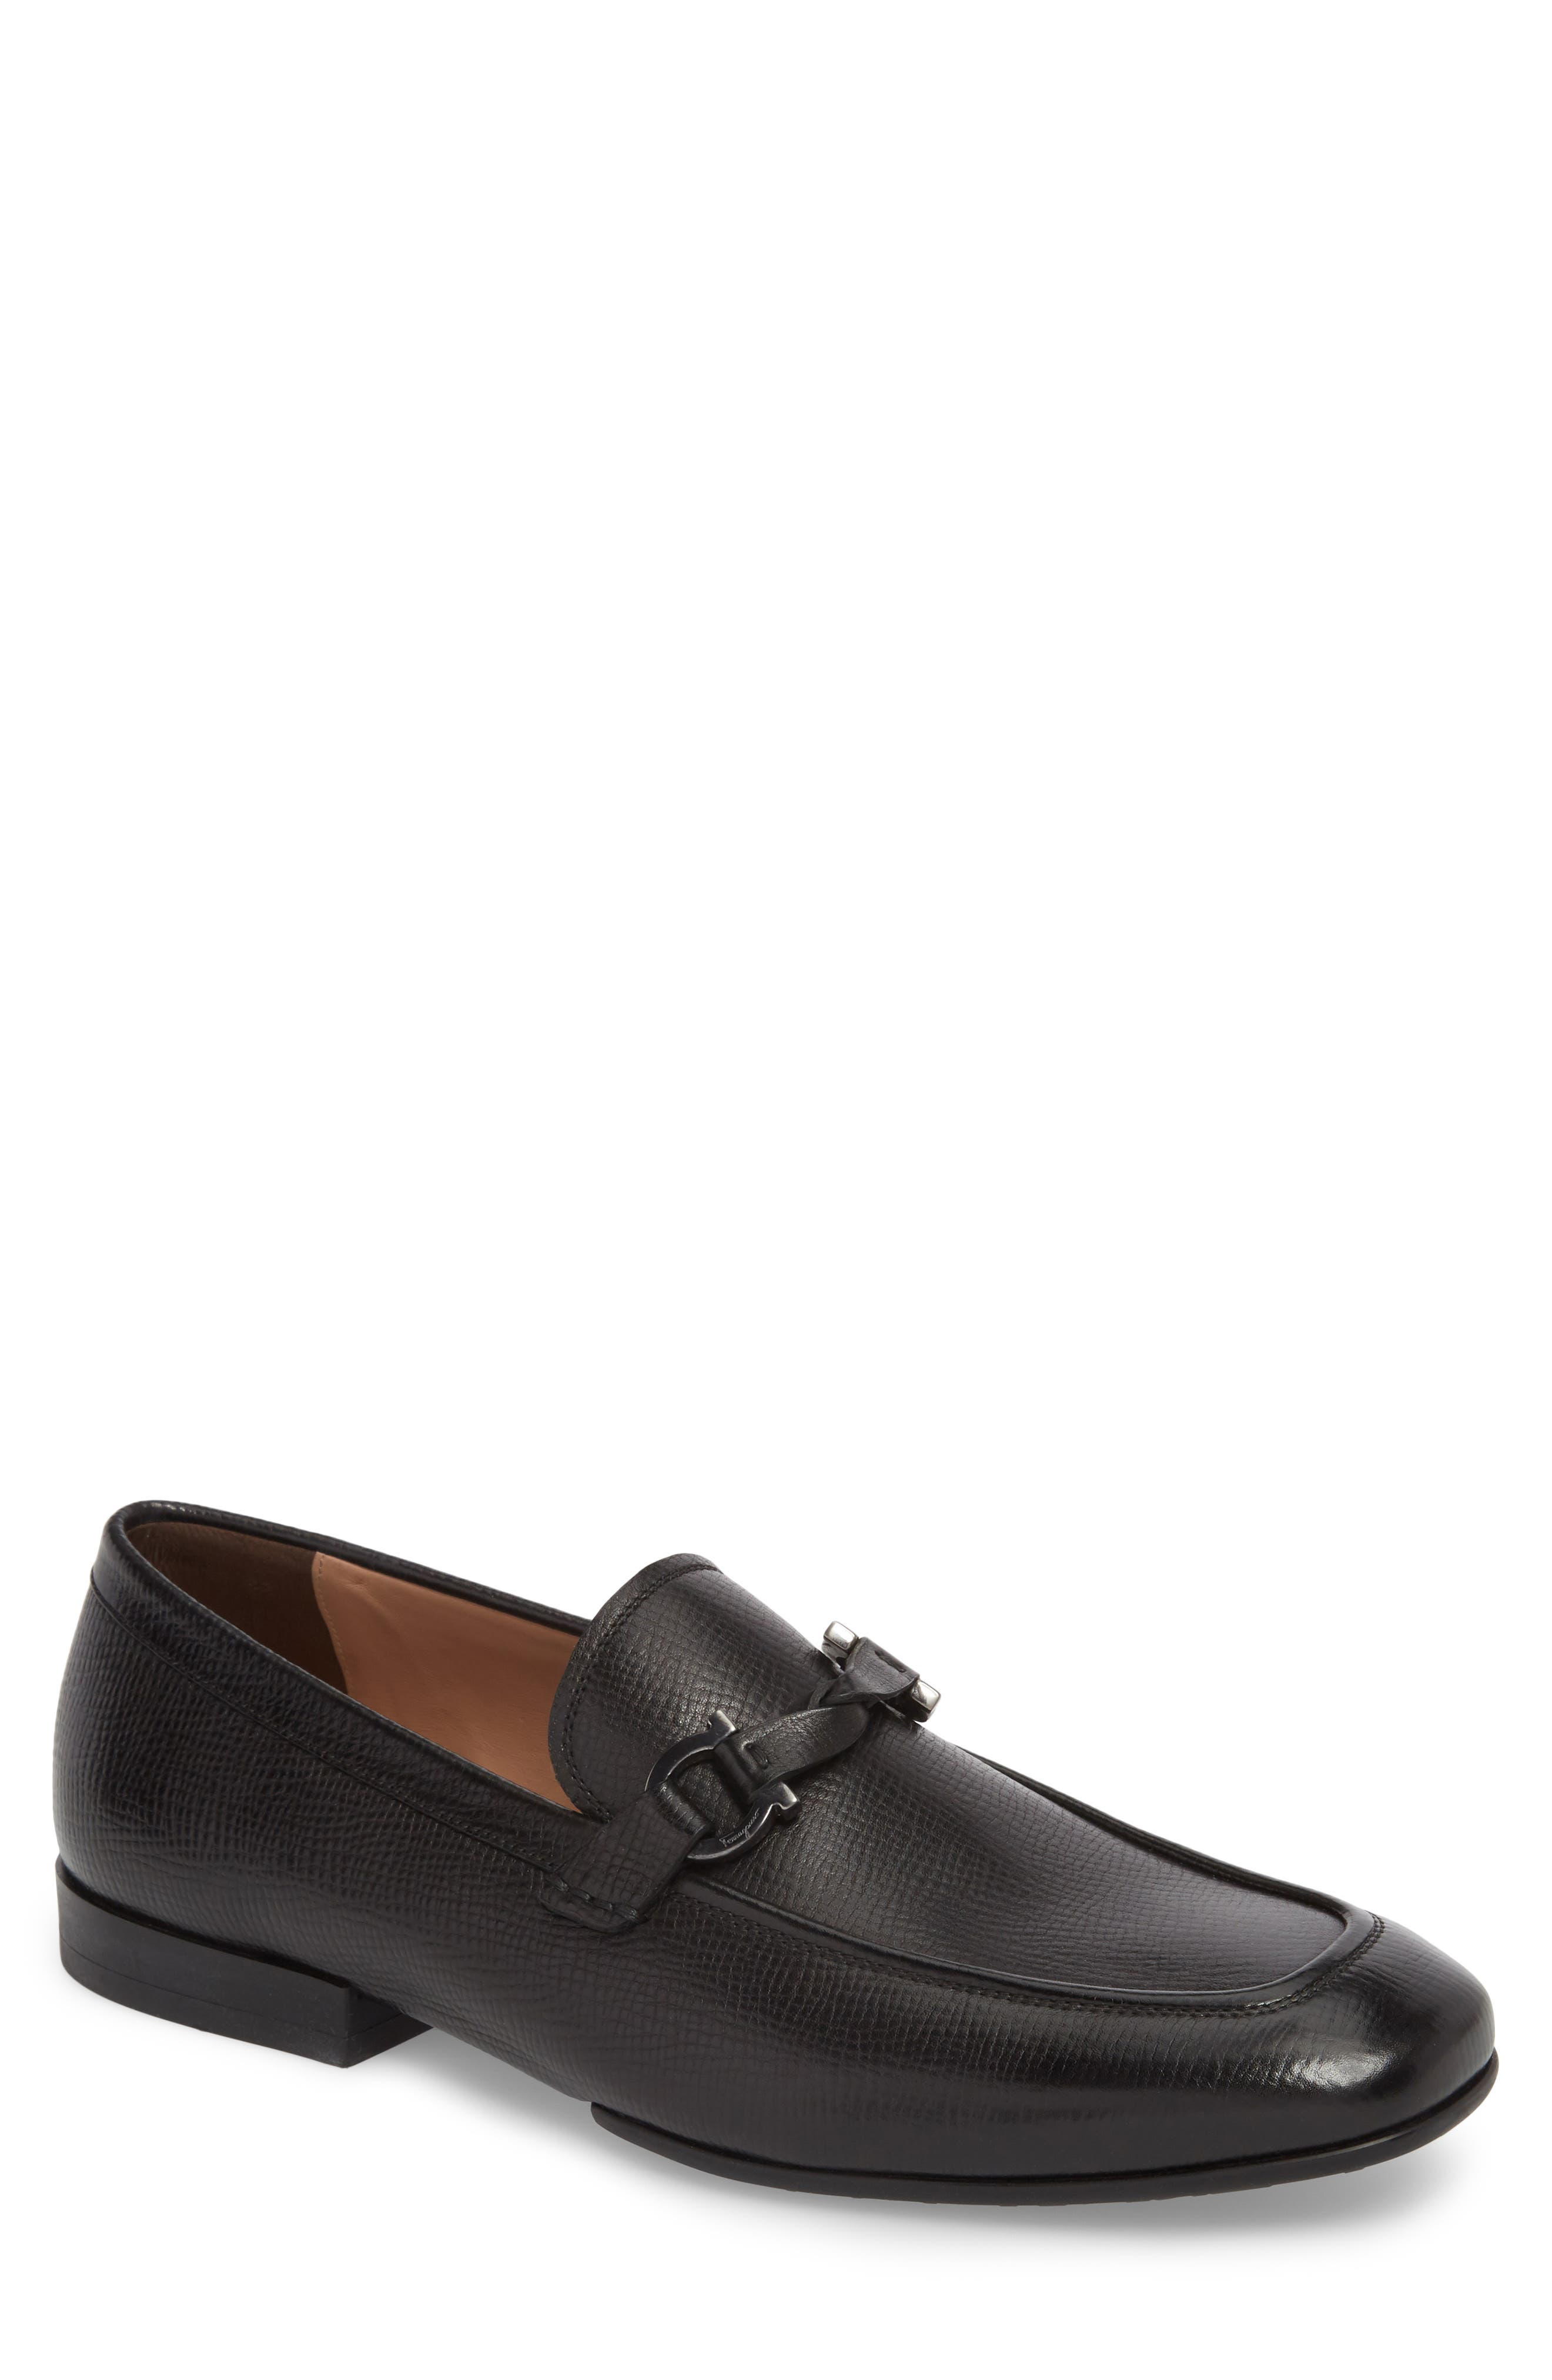 Barry Looped Bit Loafer,                             Main thumbnail 1, color,                             NERO LEATHER